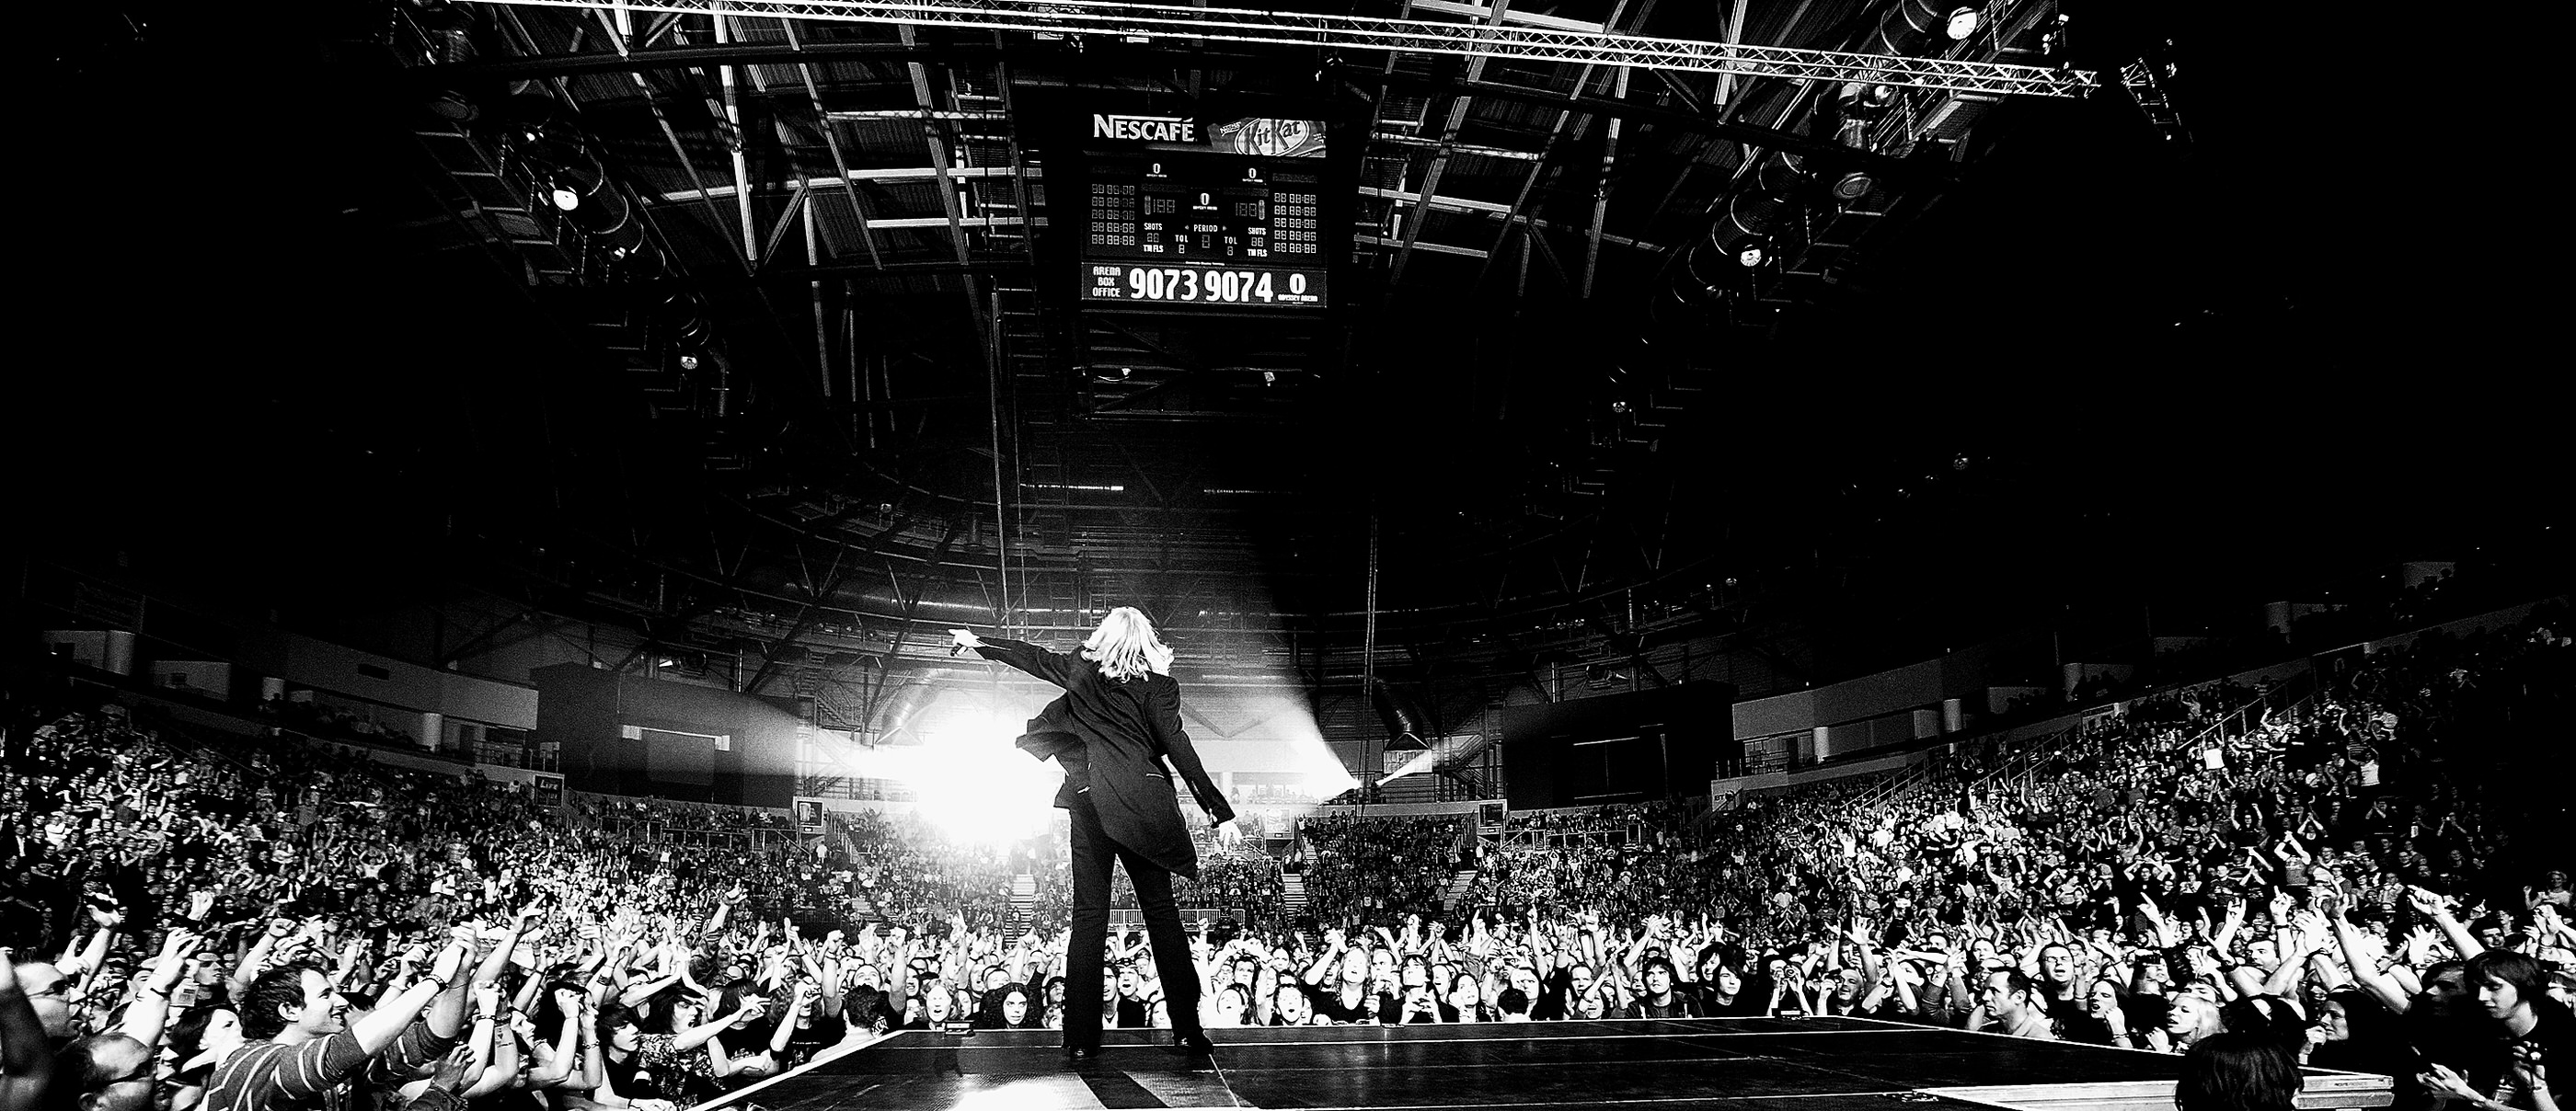 Joe Elliott Def Leppard Belfast 2008 by Ash Newell